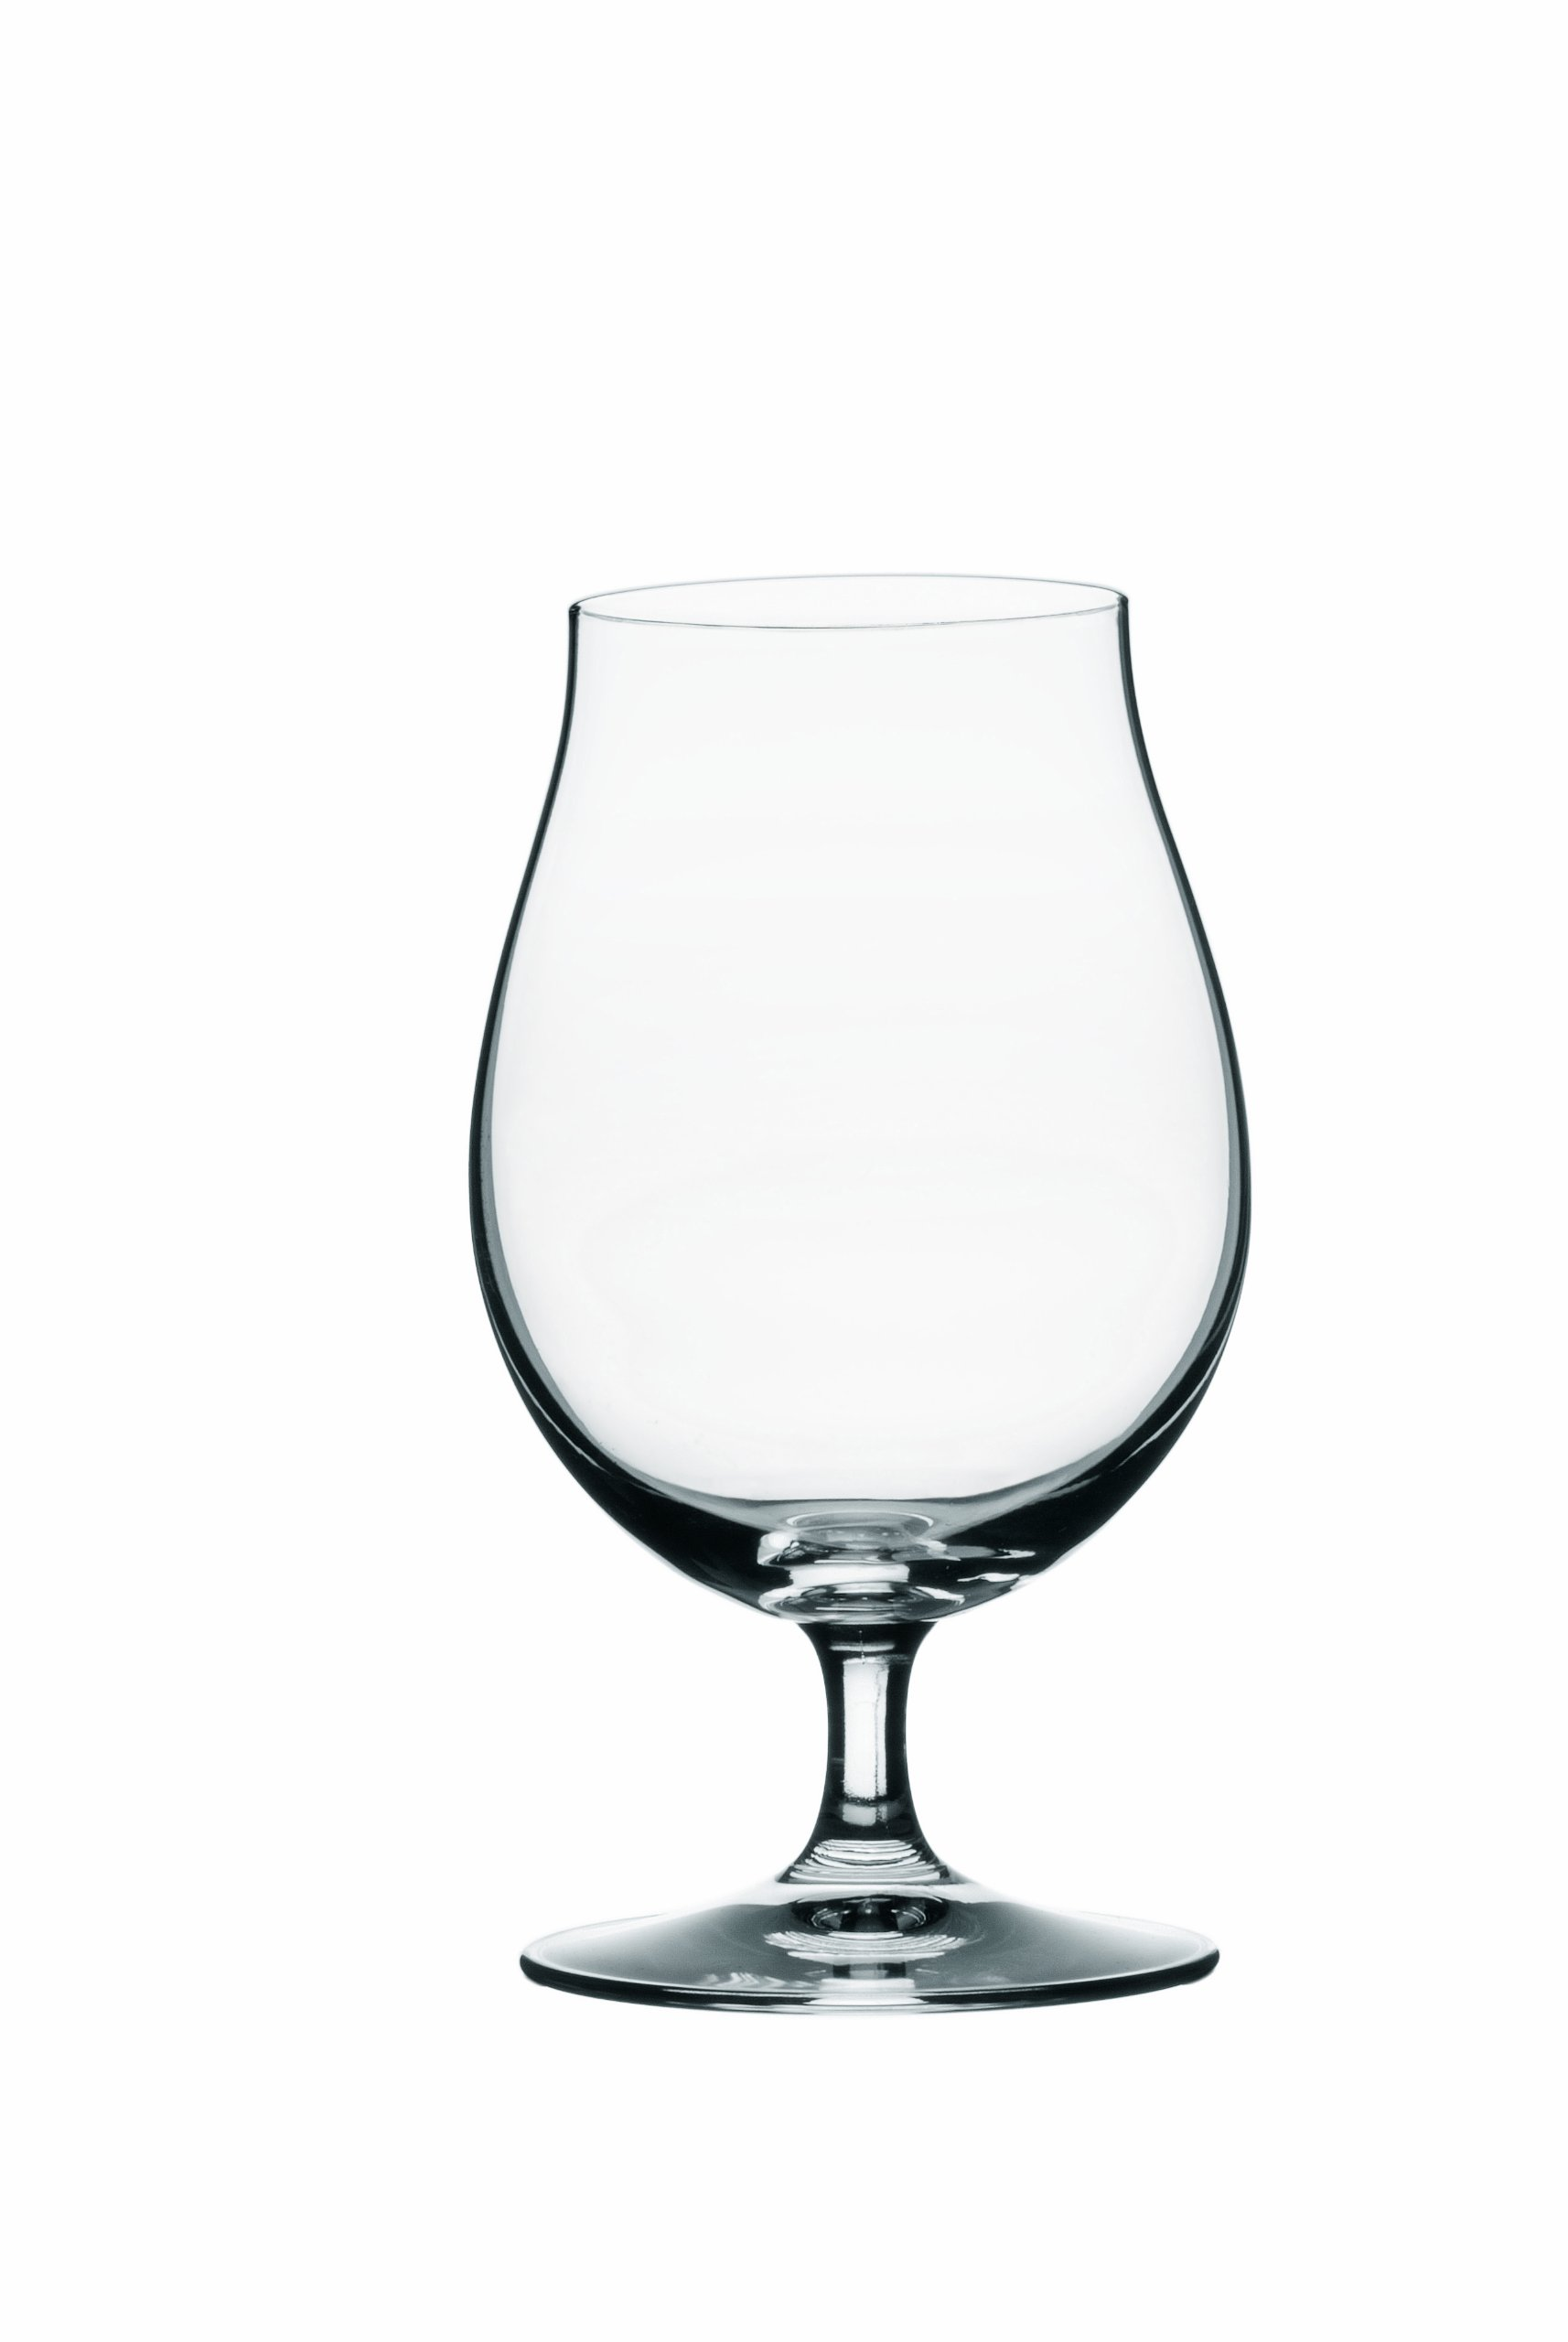 Spiegelau - Tulip Classics Beer Glasses - (Set of 4, 15.5 oz.) by Spiegelau (Image #1)